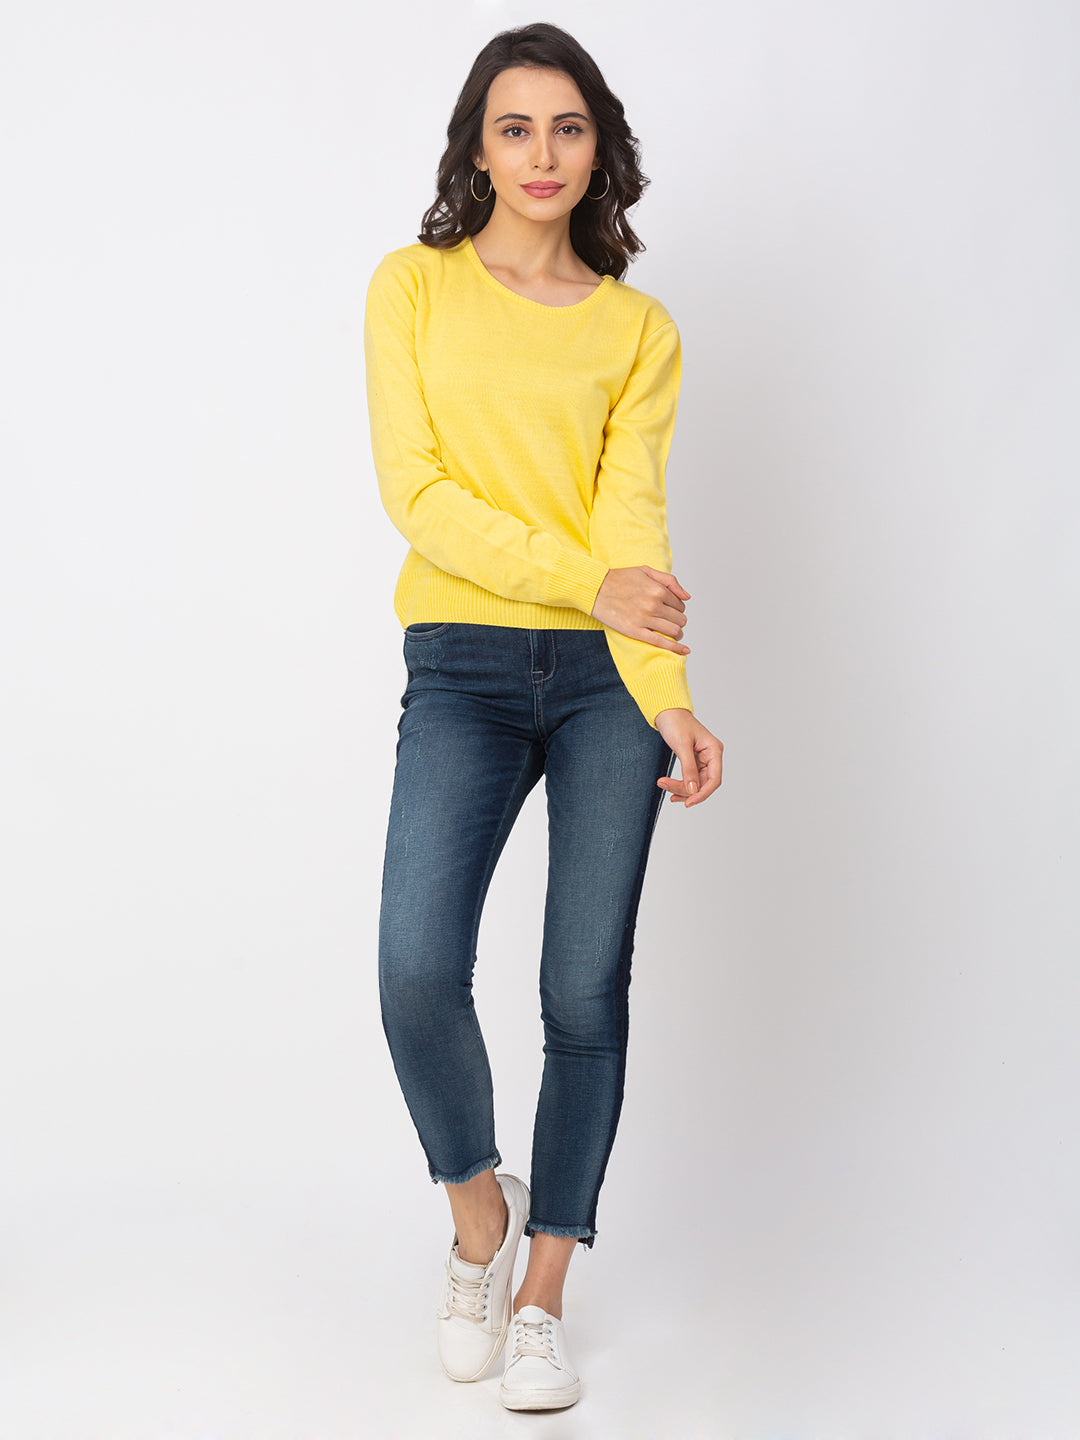 Globus Lemon Solid Sweater-2